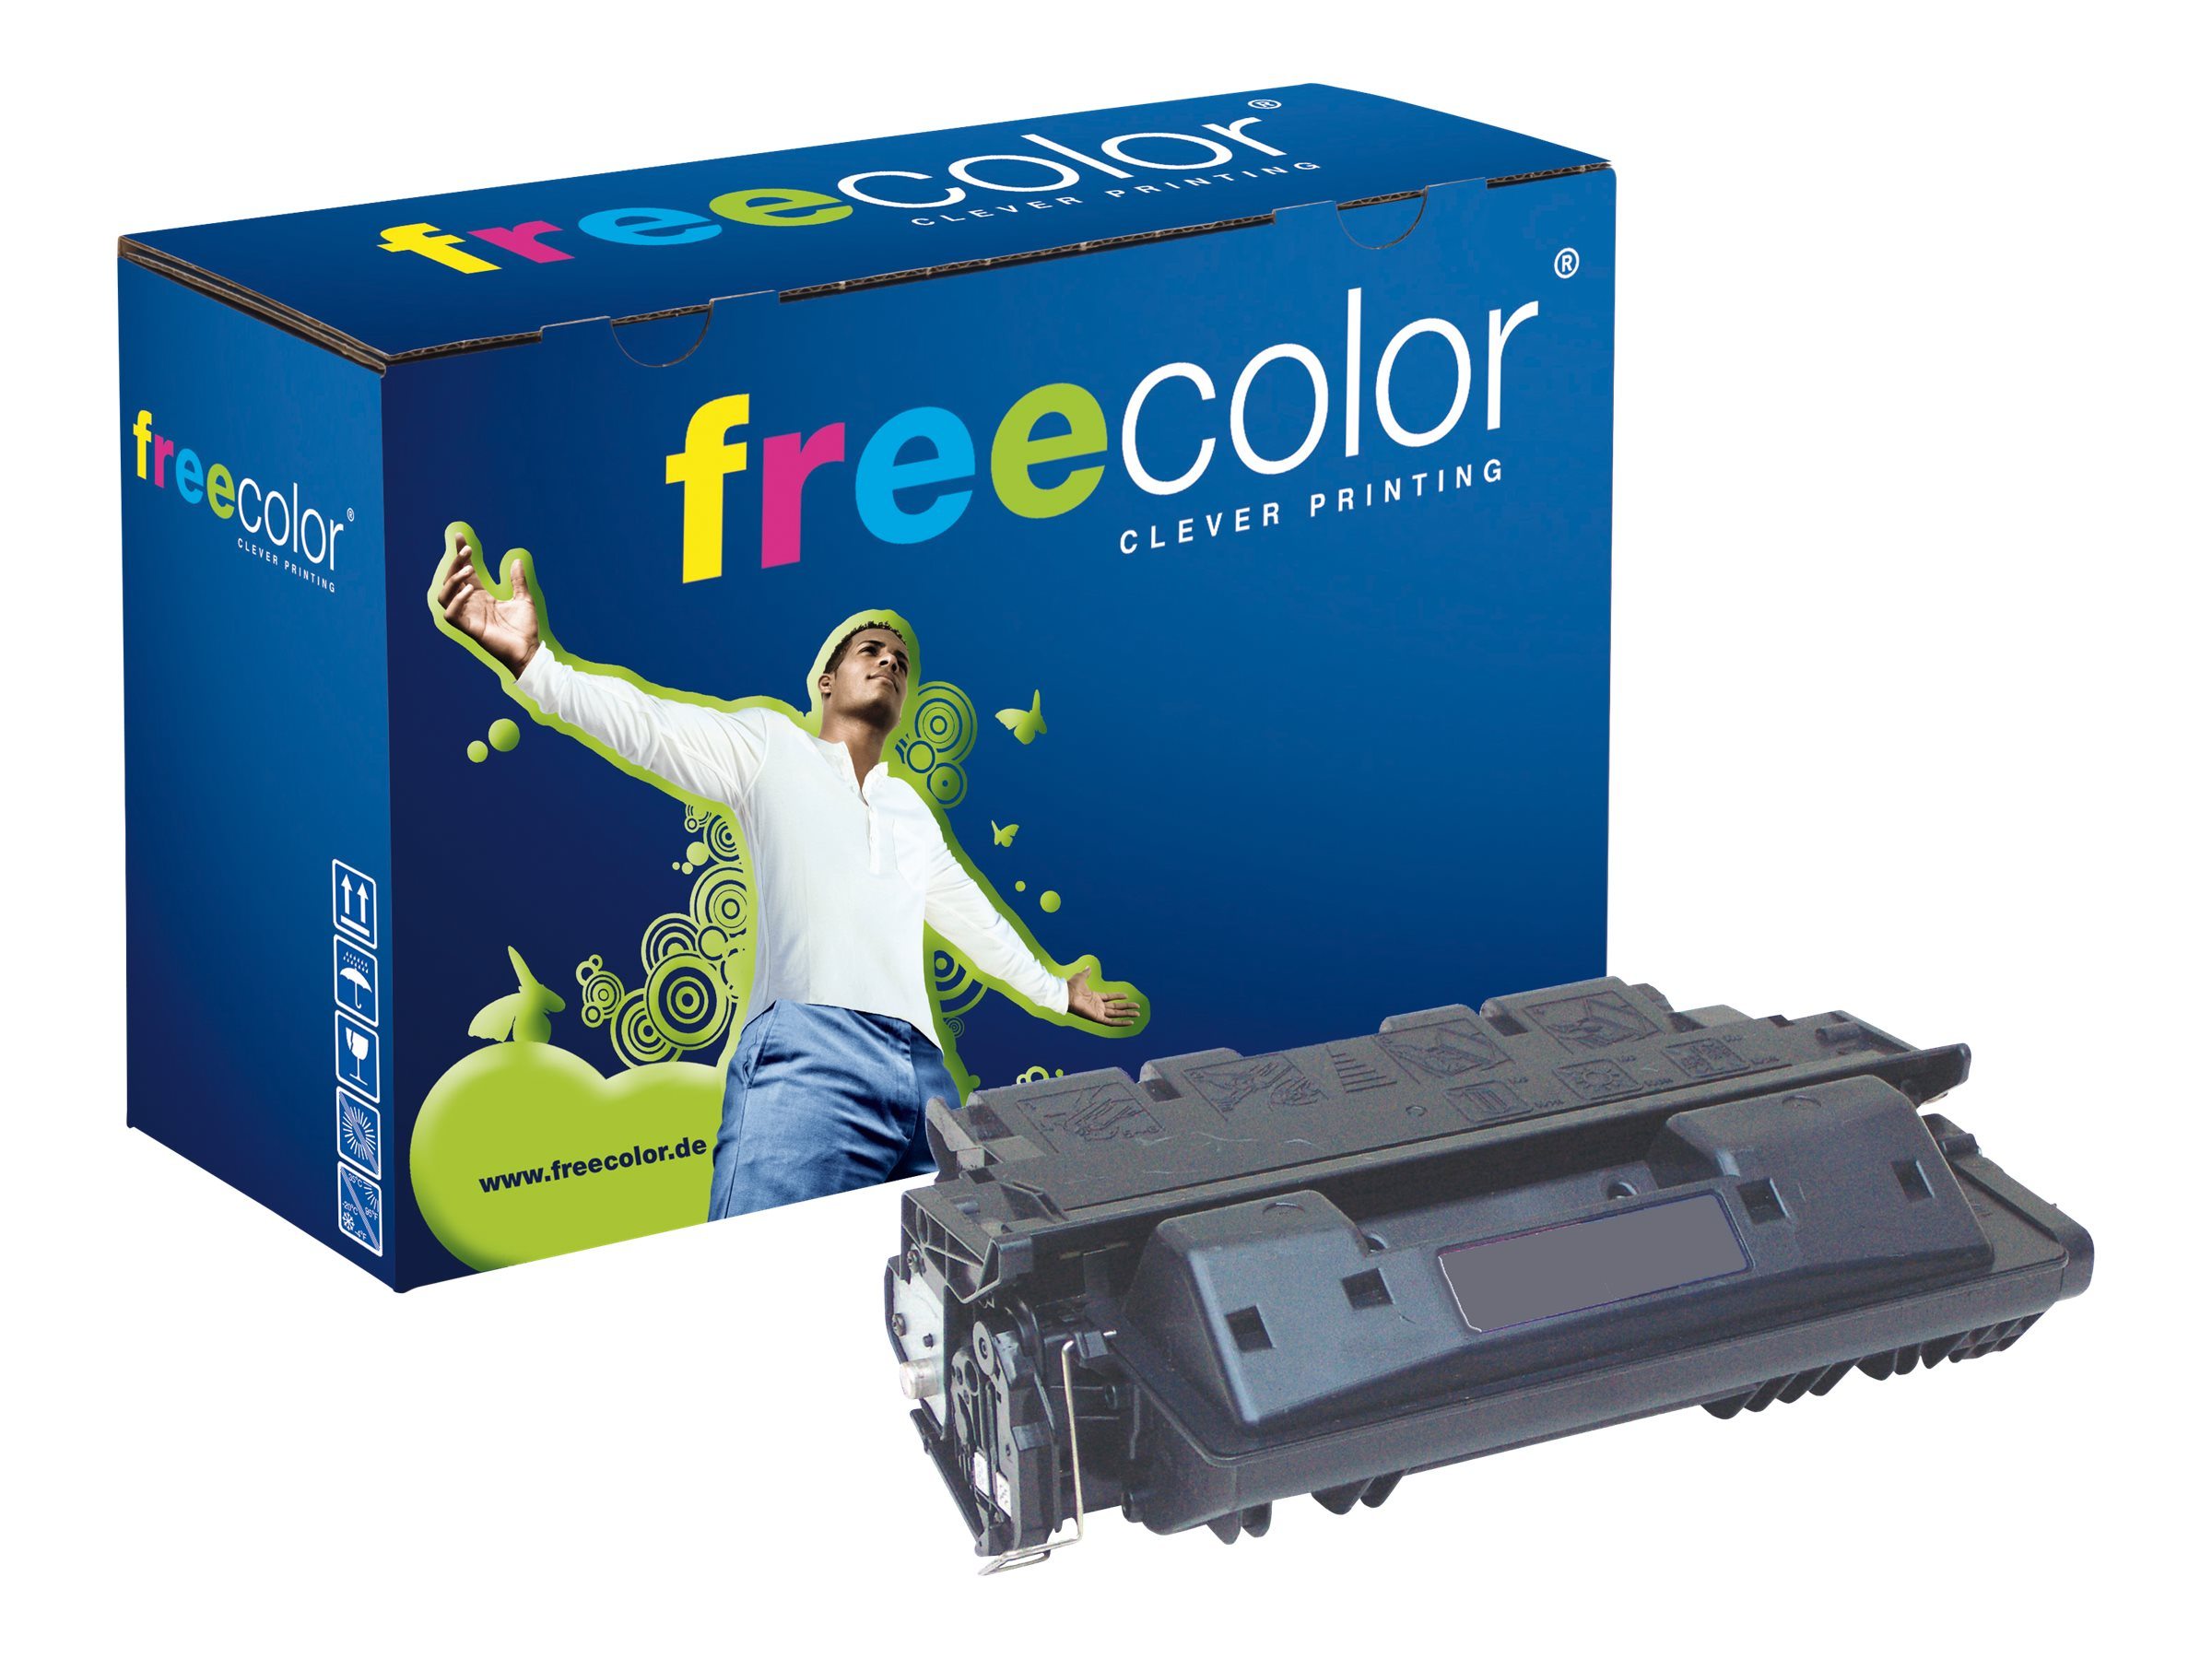 FREECOLOR - 500 g - Schwarz - Tonerpatrone (Alternative zu: HP 61X) - für HP Envy 5535; LaserJet 4100, 4100dtn, 4100mfp, 4100n, 4100tn, 4101mfp